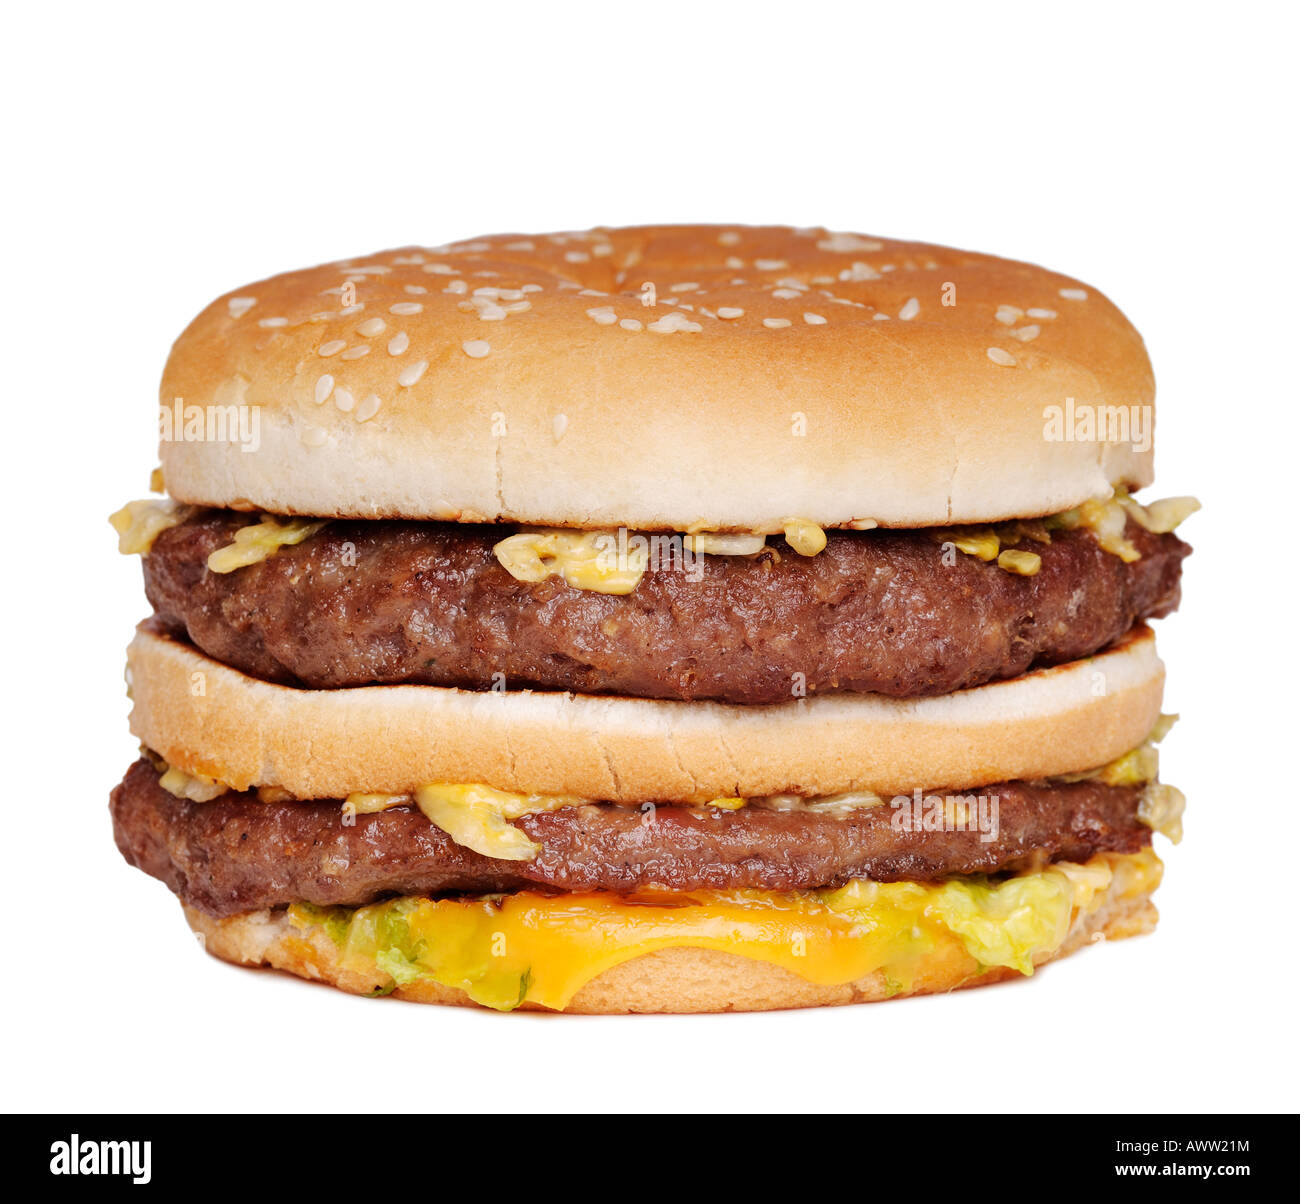 Burger Close Up Against a White Background - Stock Image